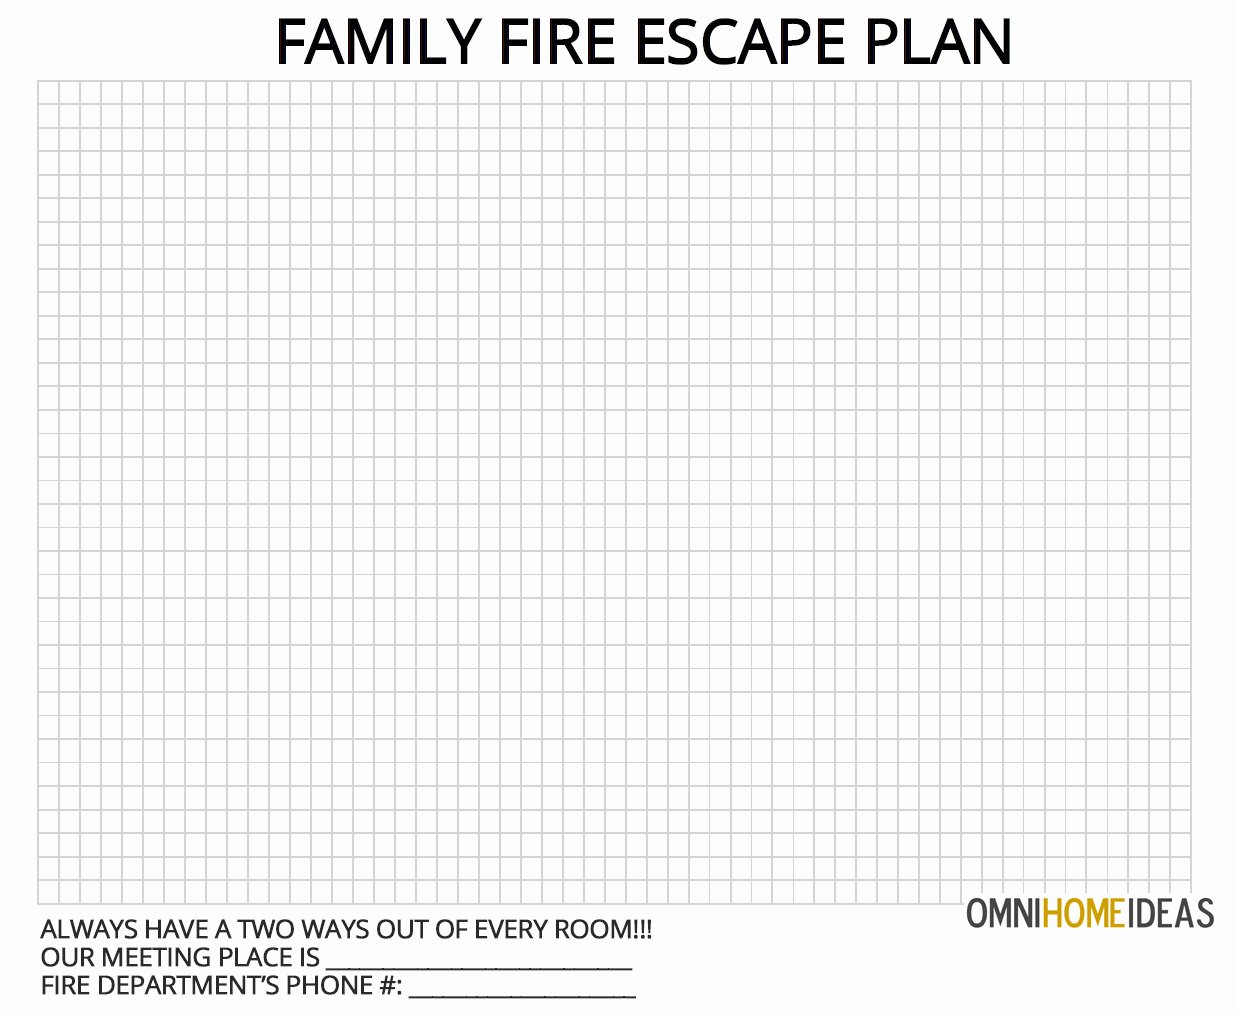 Printable Fire Escape Plan Template Inspirational How to Make A Fire Escape Plan for Home with Printable